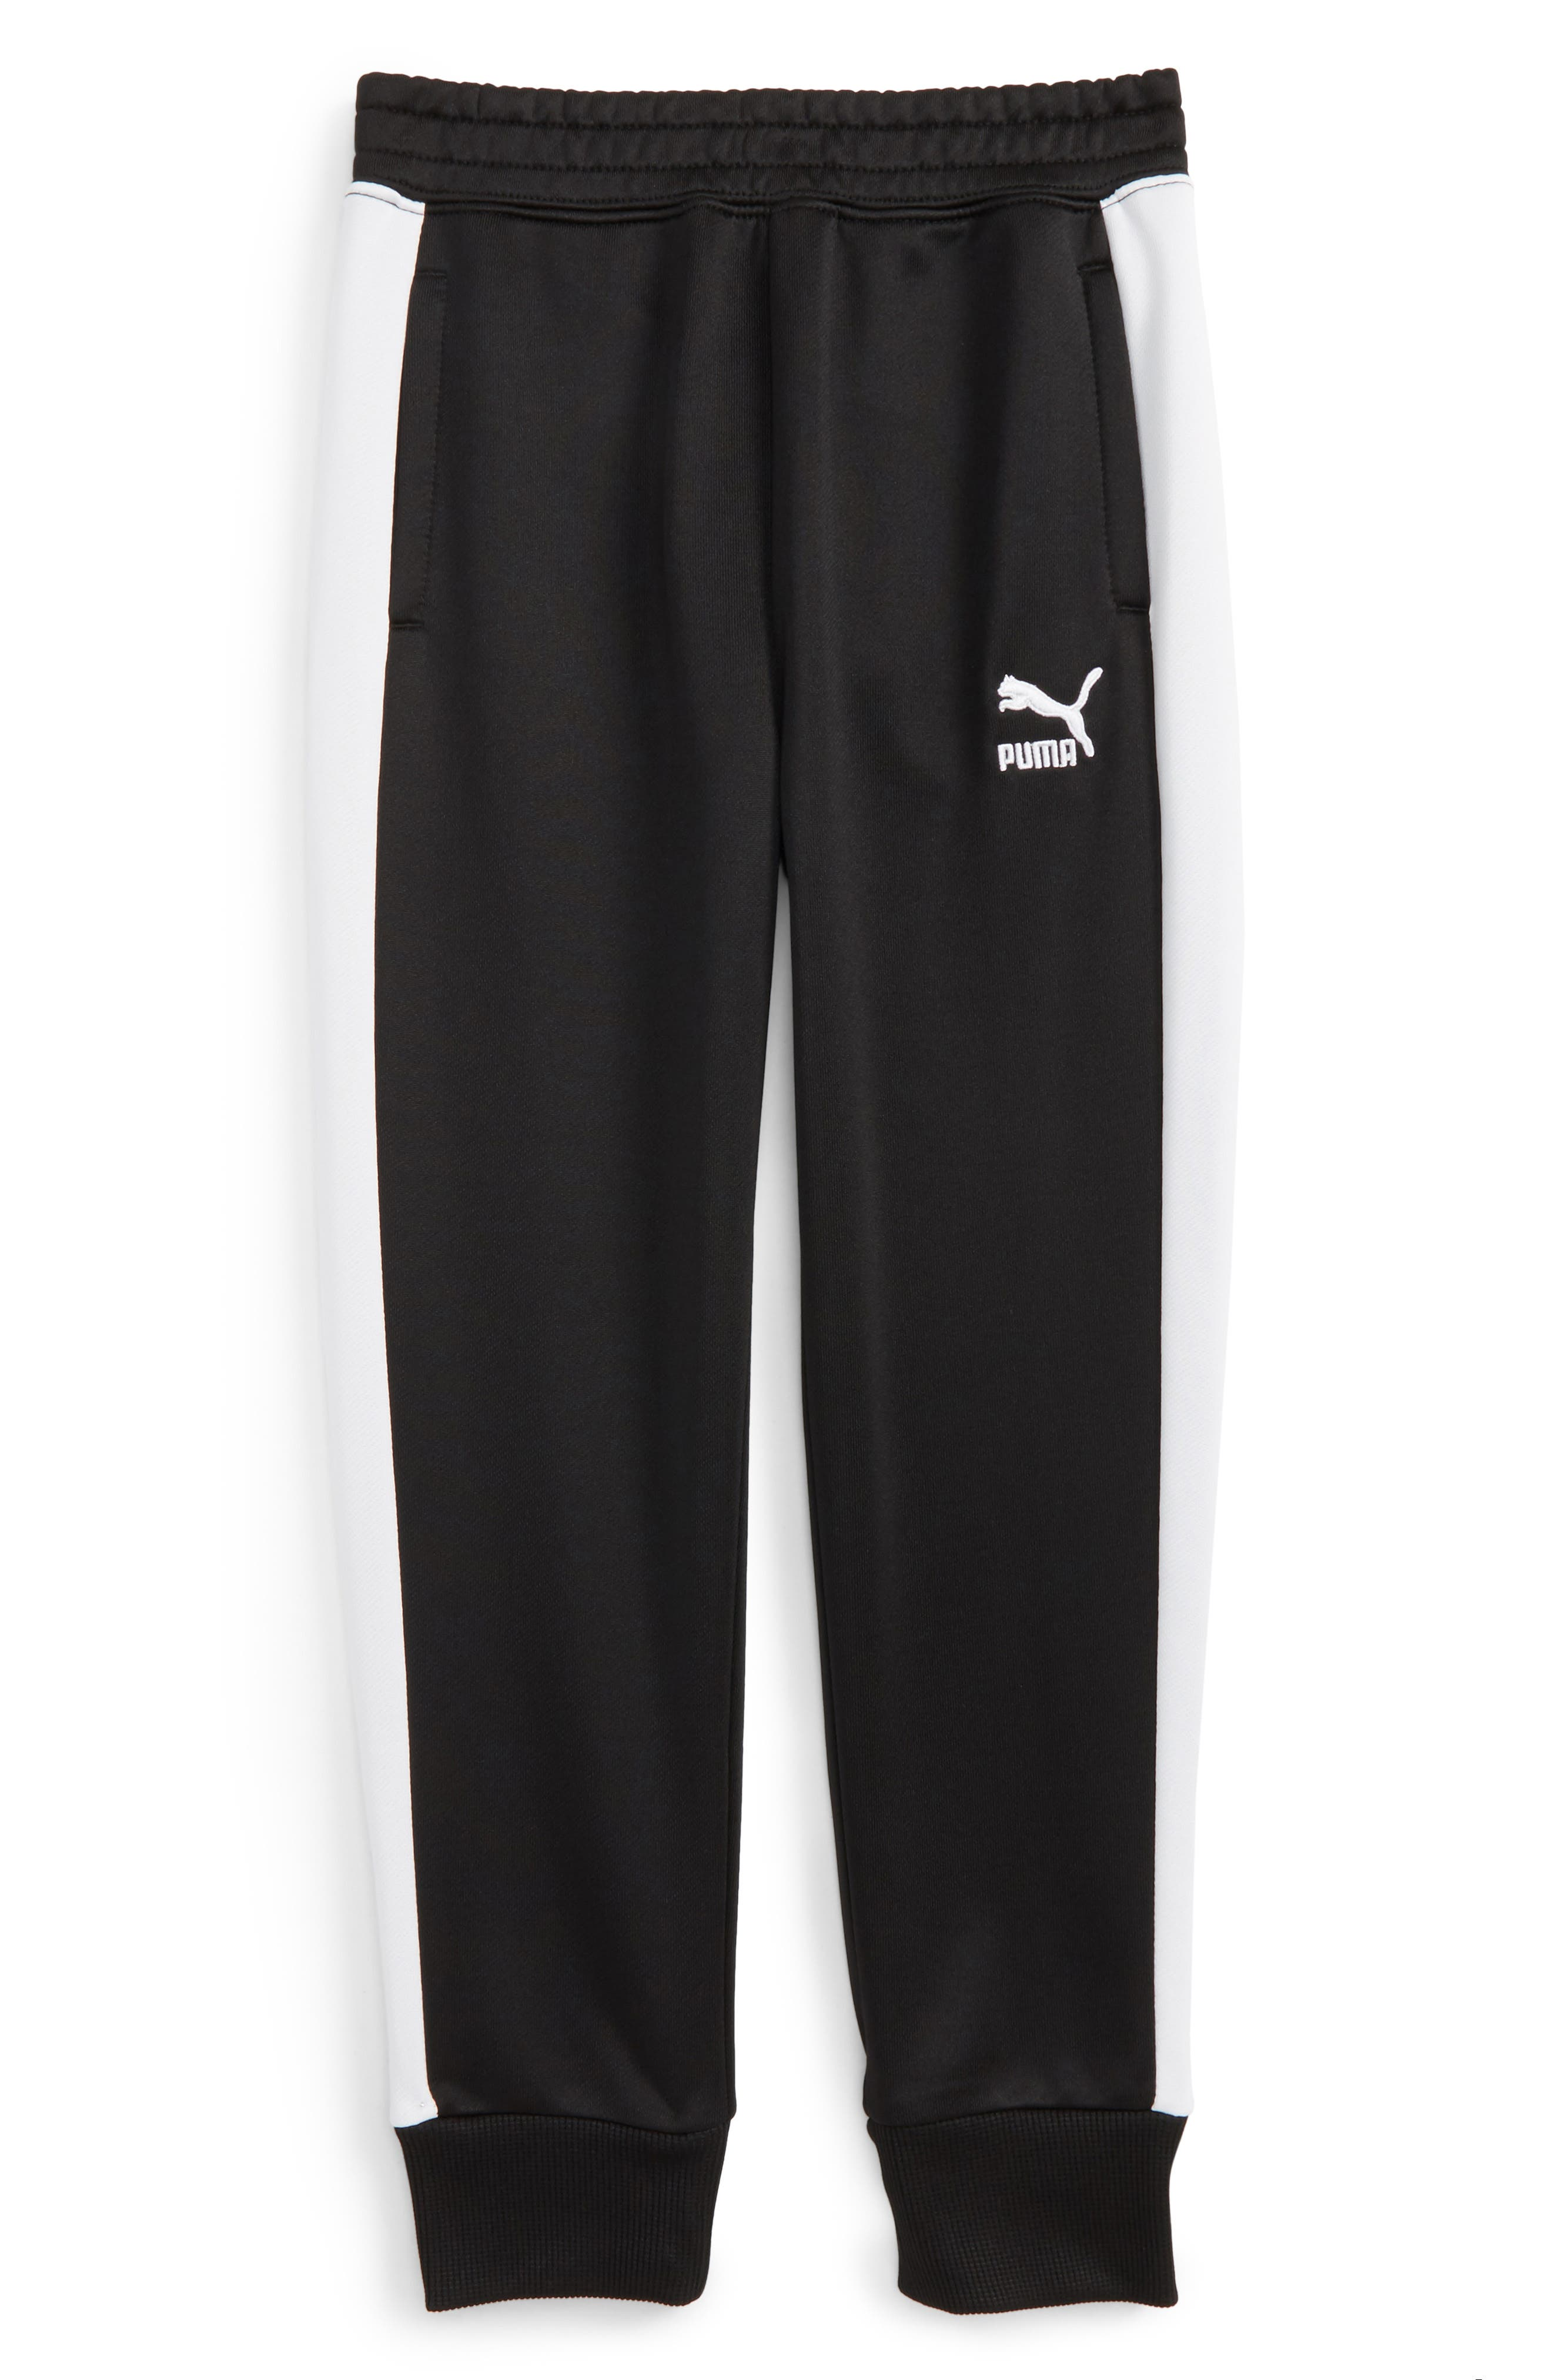 T7 Jogger Pants,                             Main thumbnail 1, color,                             001